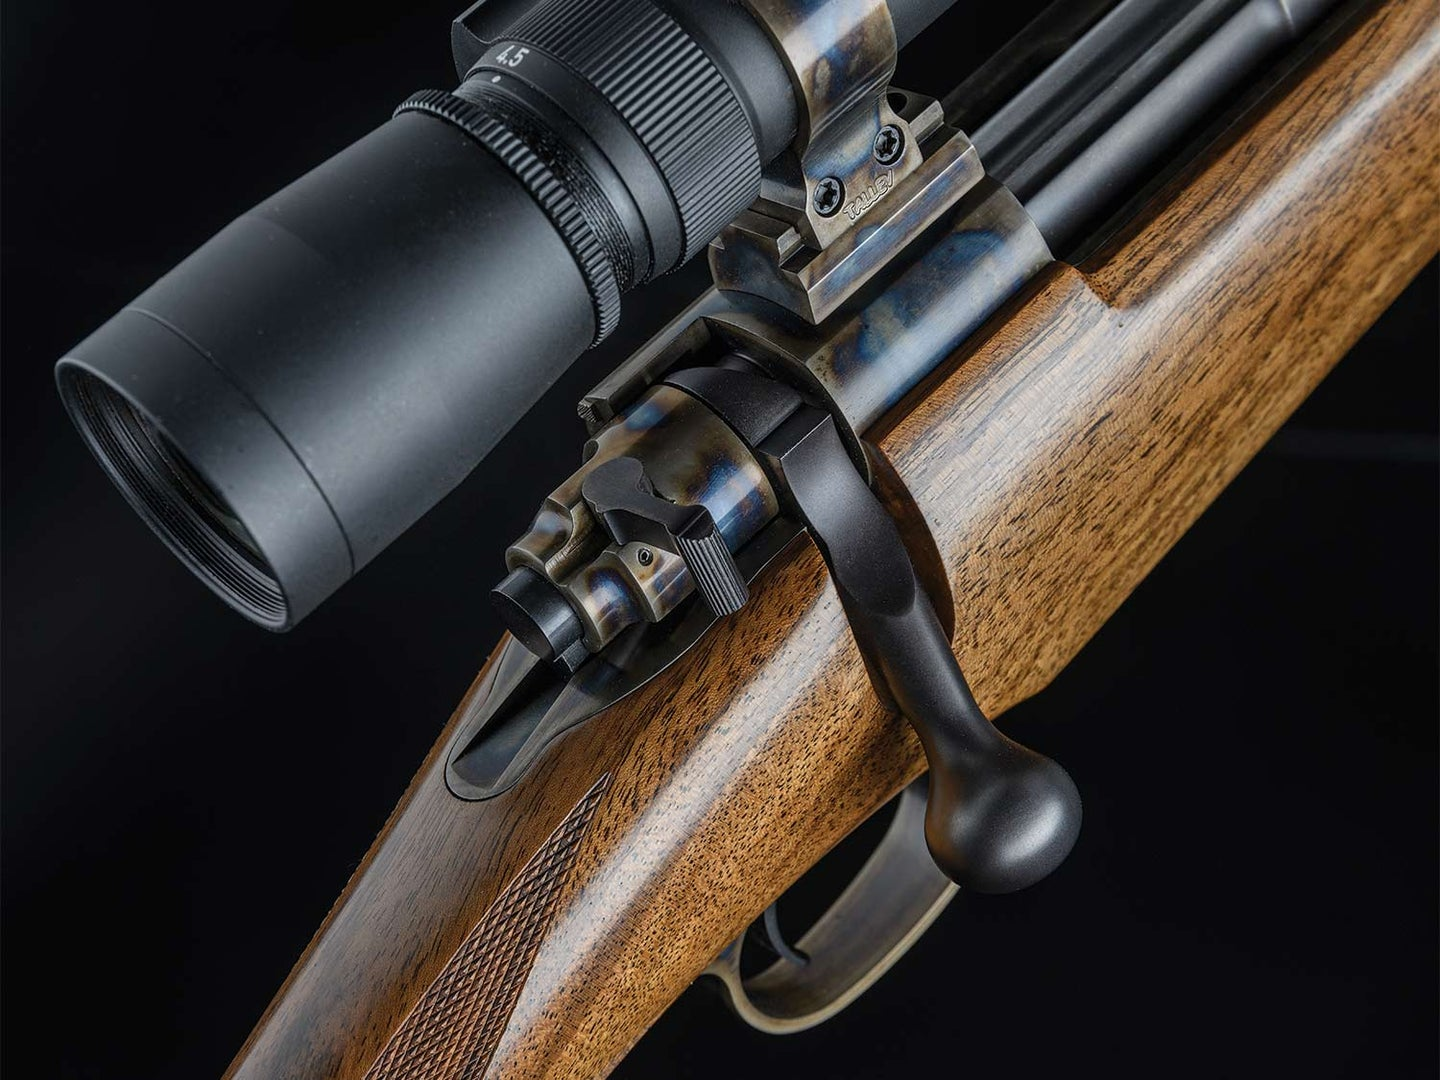 Closeup details of a scoped rifle on a black background.